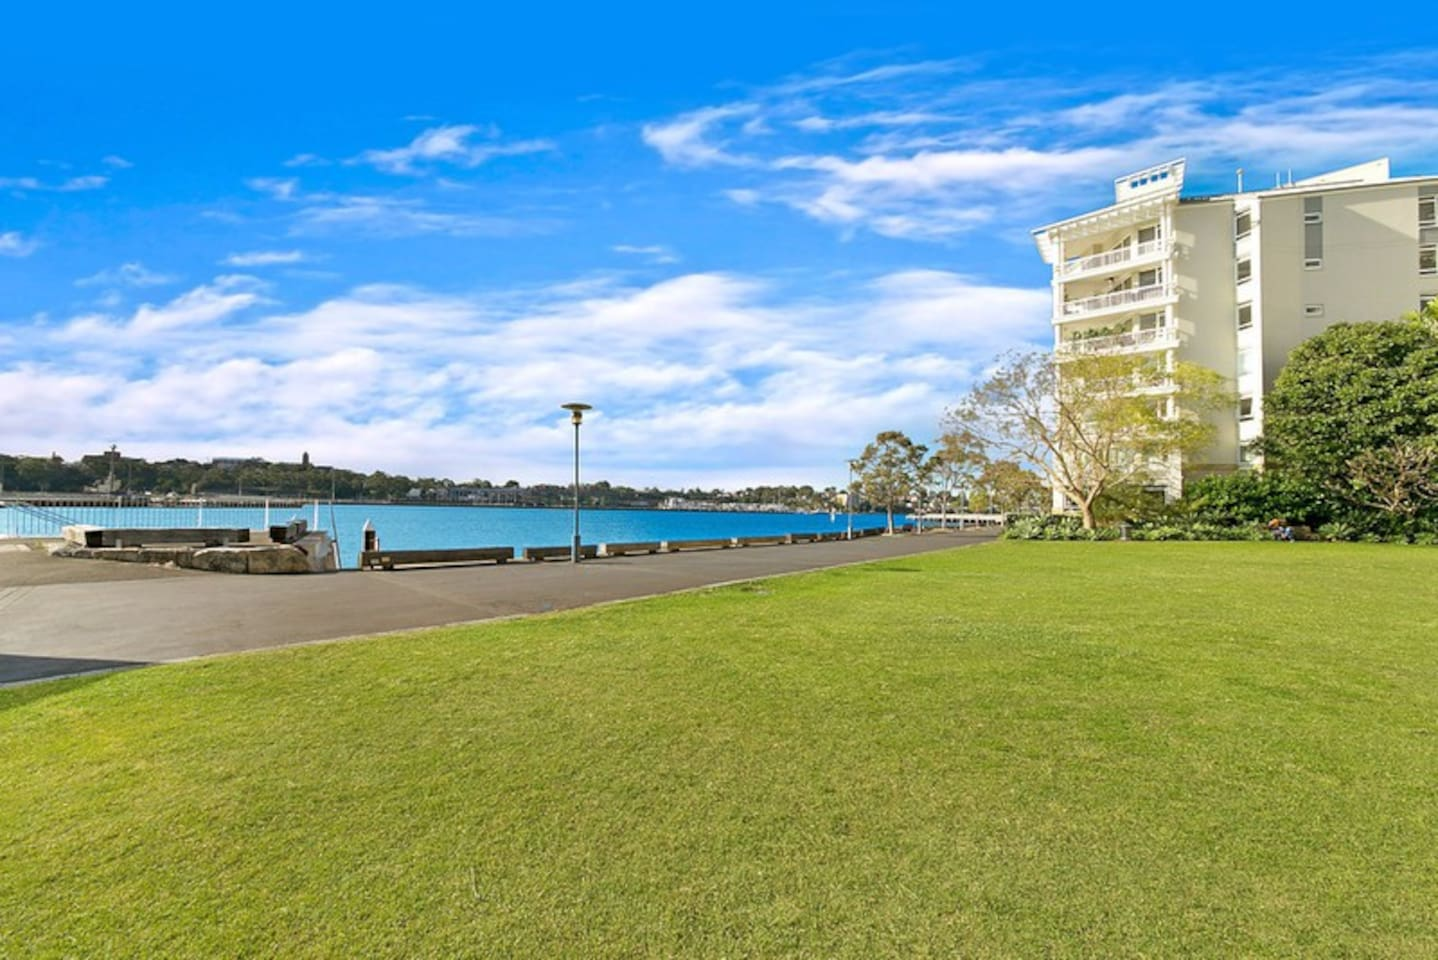 Enjoy yourself the water view and the tranquillity of this place. Still in the busy Sydney but quiet and peaceful area not far from all amenities.